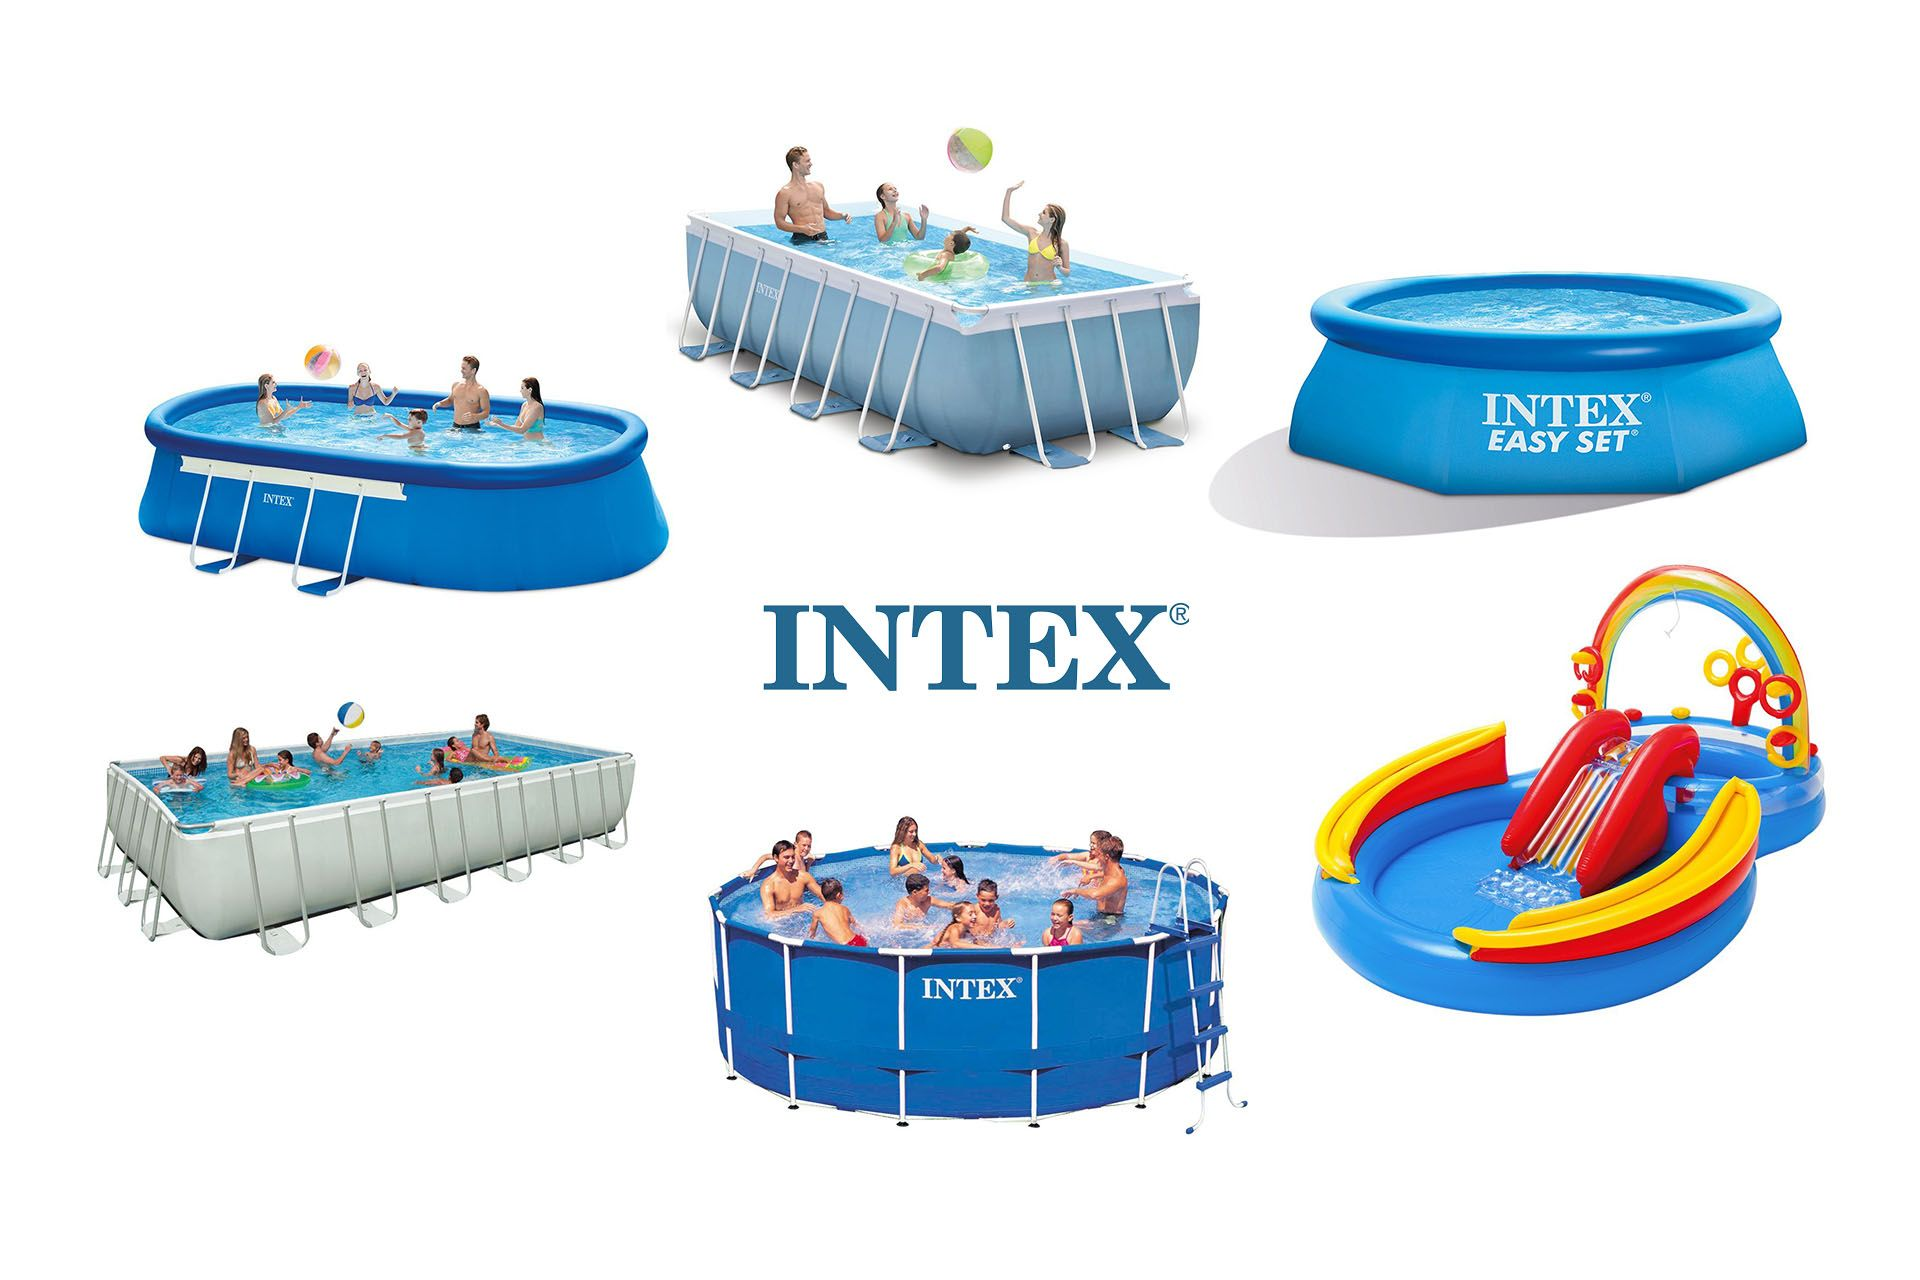 Best Above Ground Intex Pools in 2018 Reviews, Prices